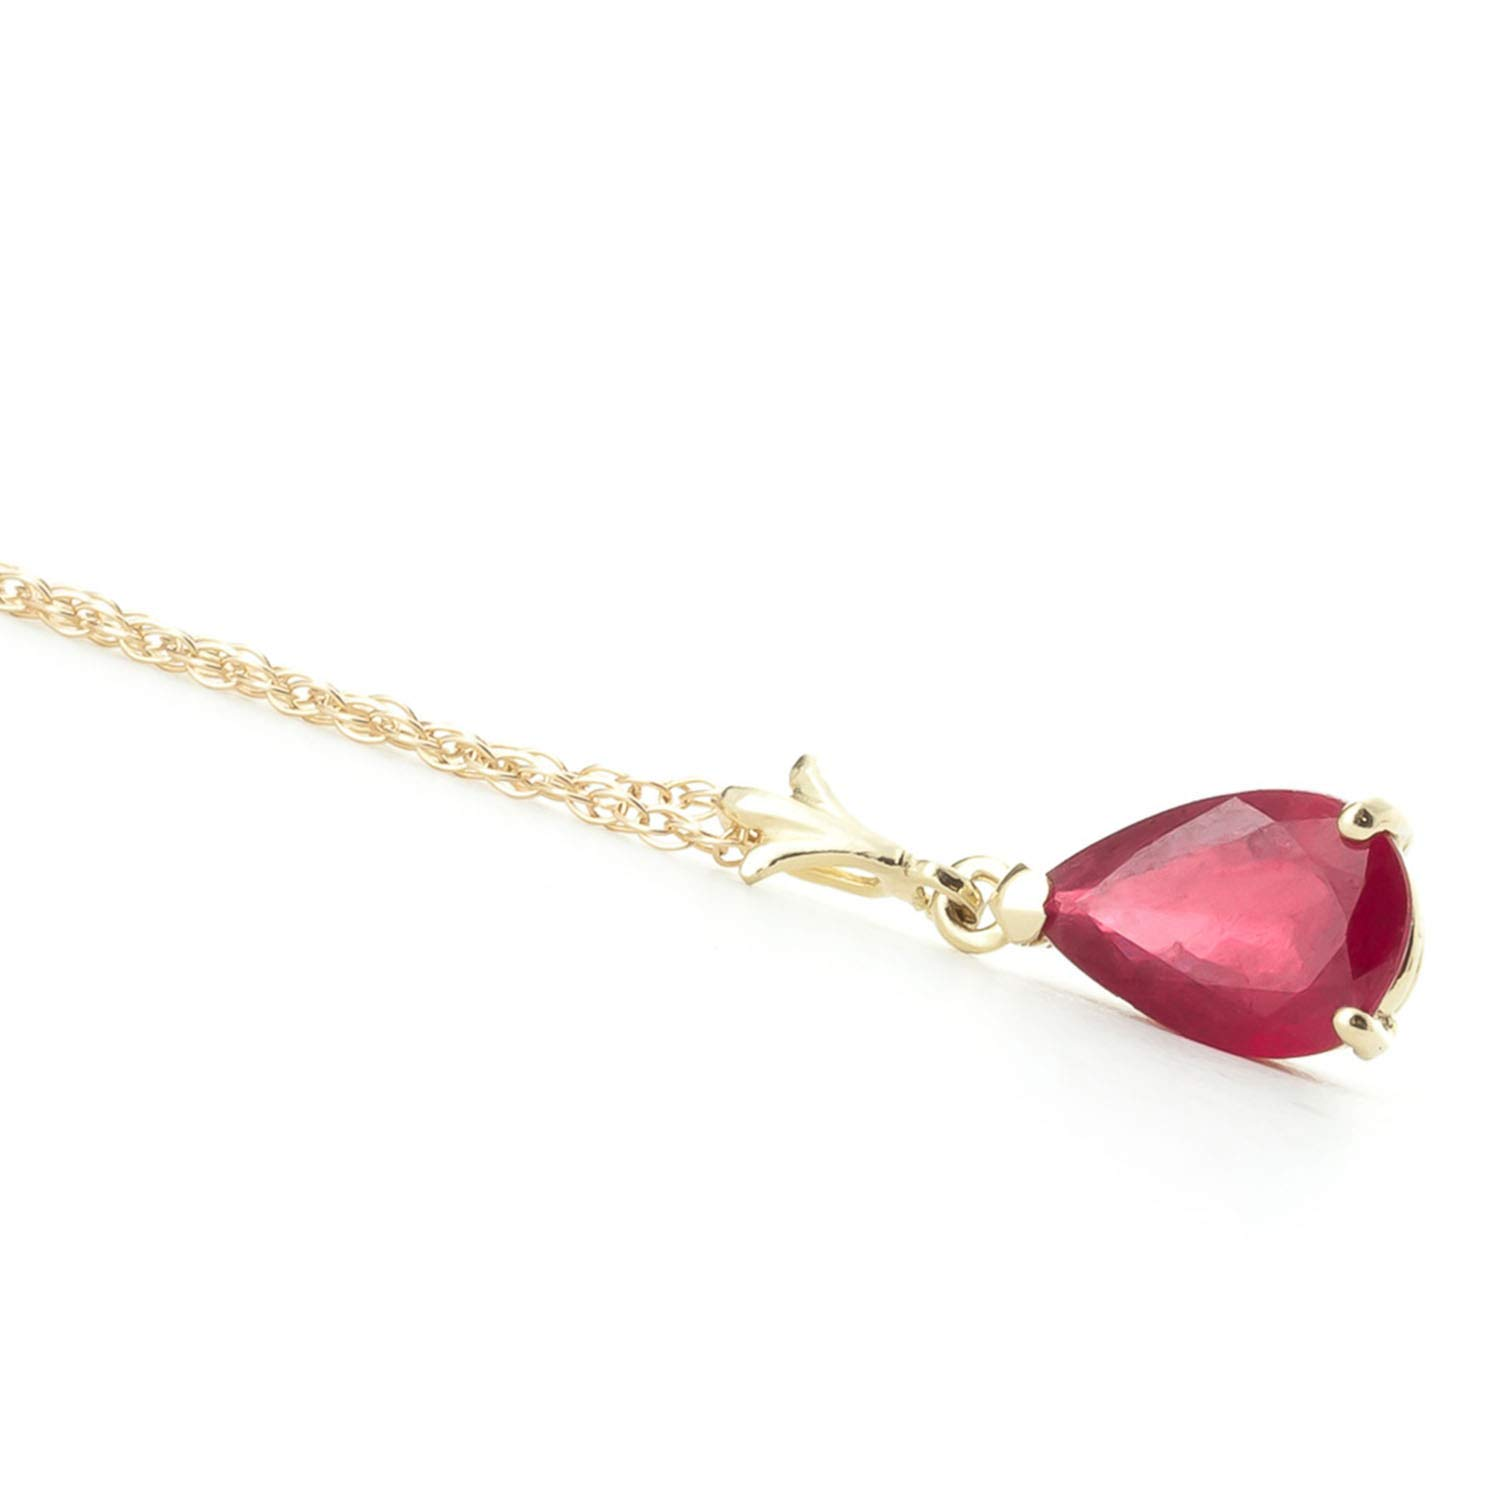 Galaxy Gold 1.75 Carat 14k 18'' Solid Gold Natural Pear-shaped Ruby Drop Pendant Necklace by Galaxy Gold (Image #4)